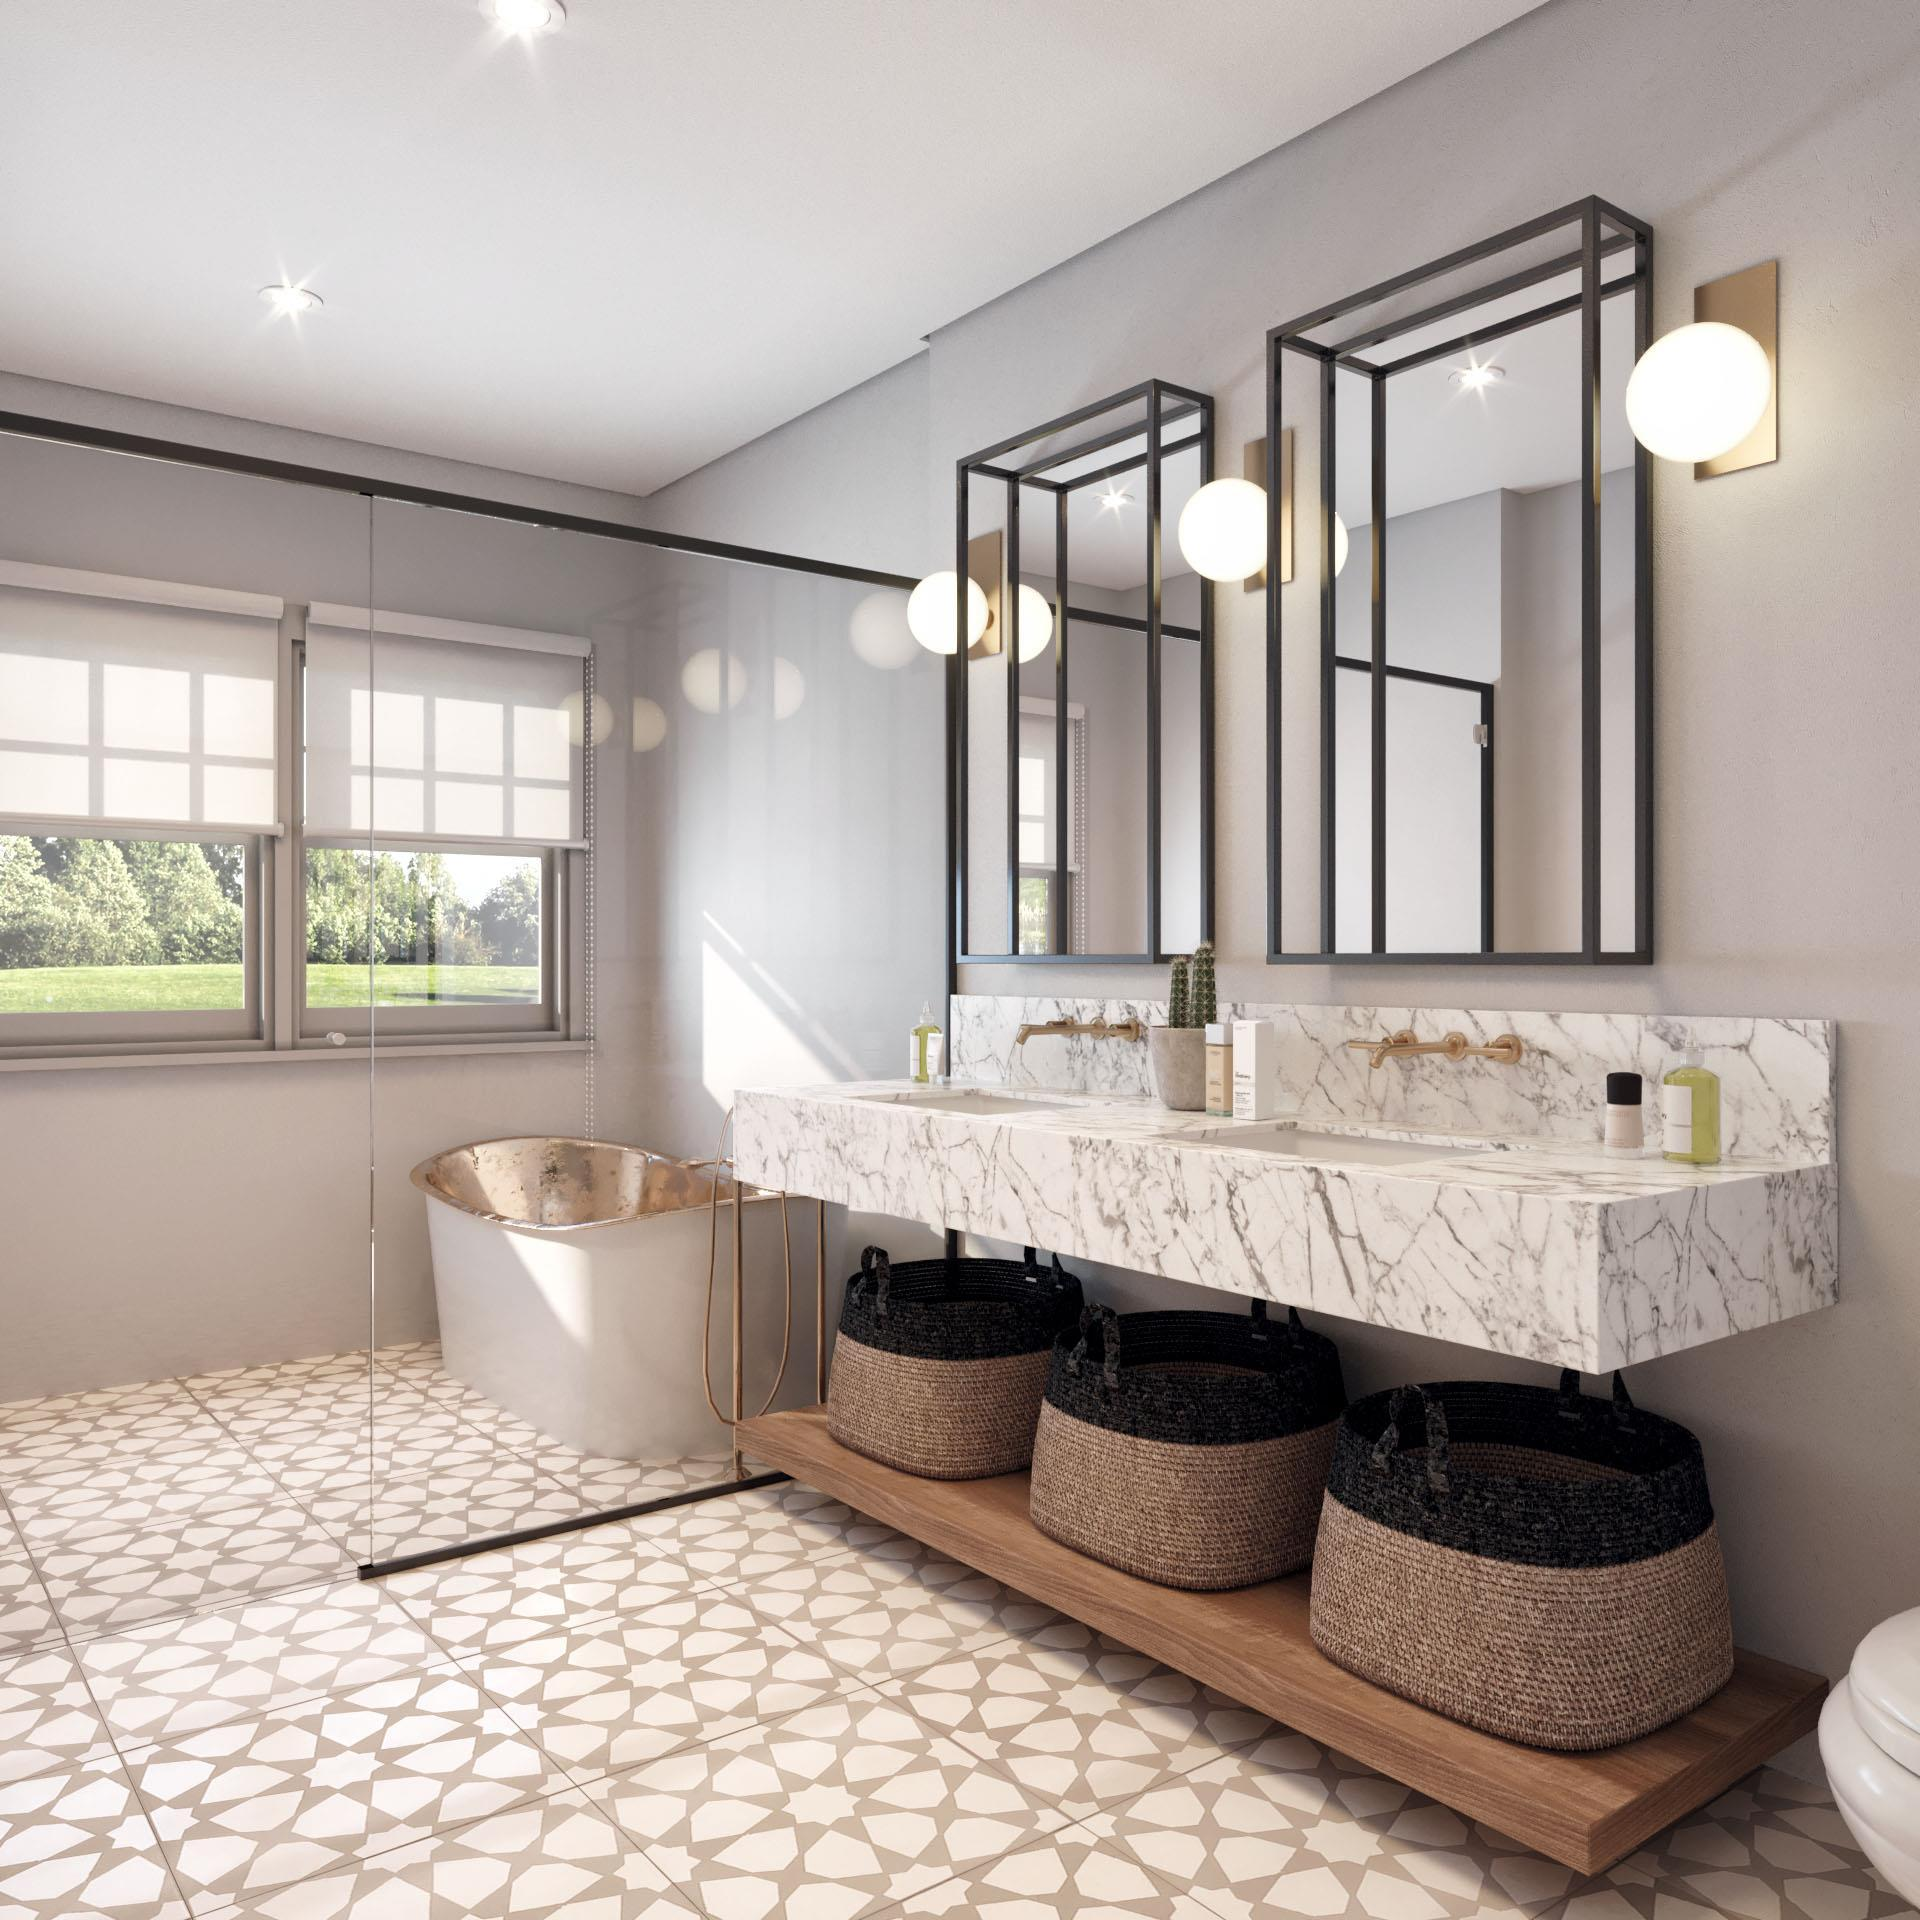 Bathroom featured in the Villa C2 By Beechwood Homes in Nassau-Suffolk, NY